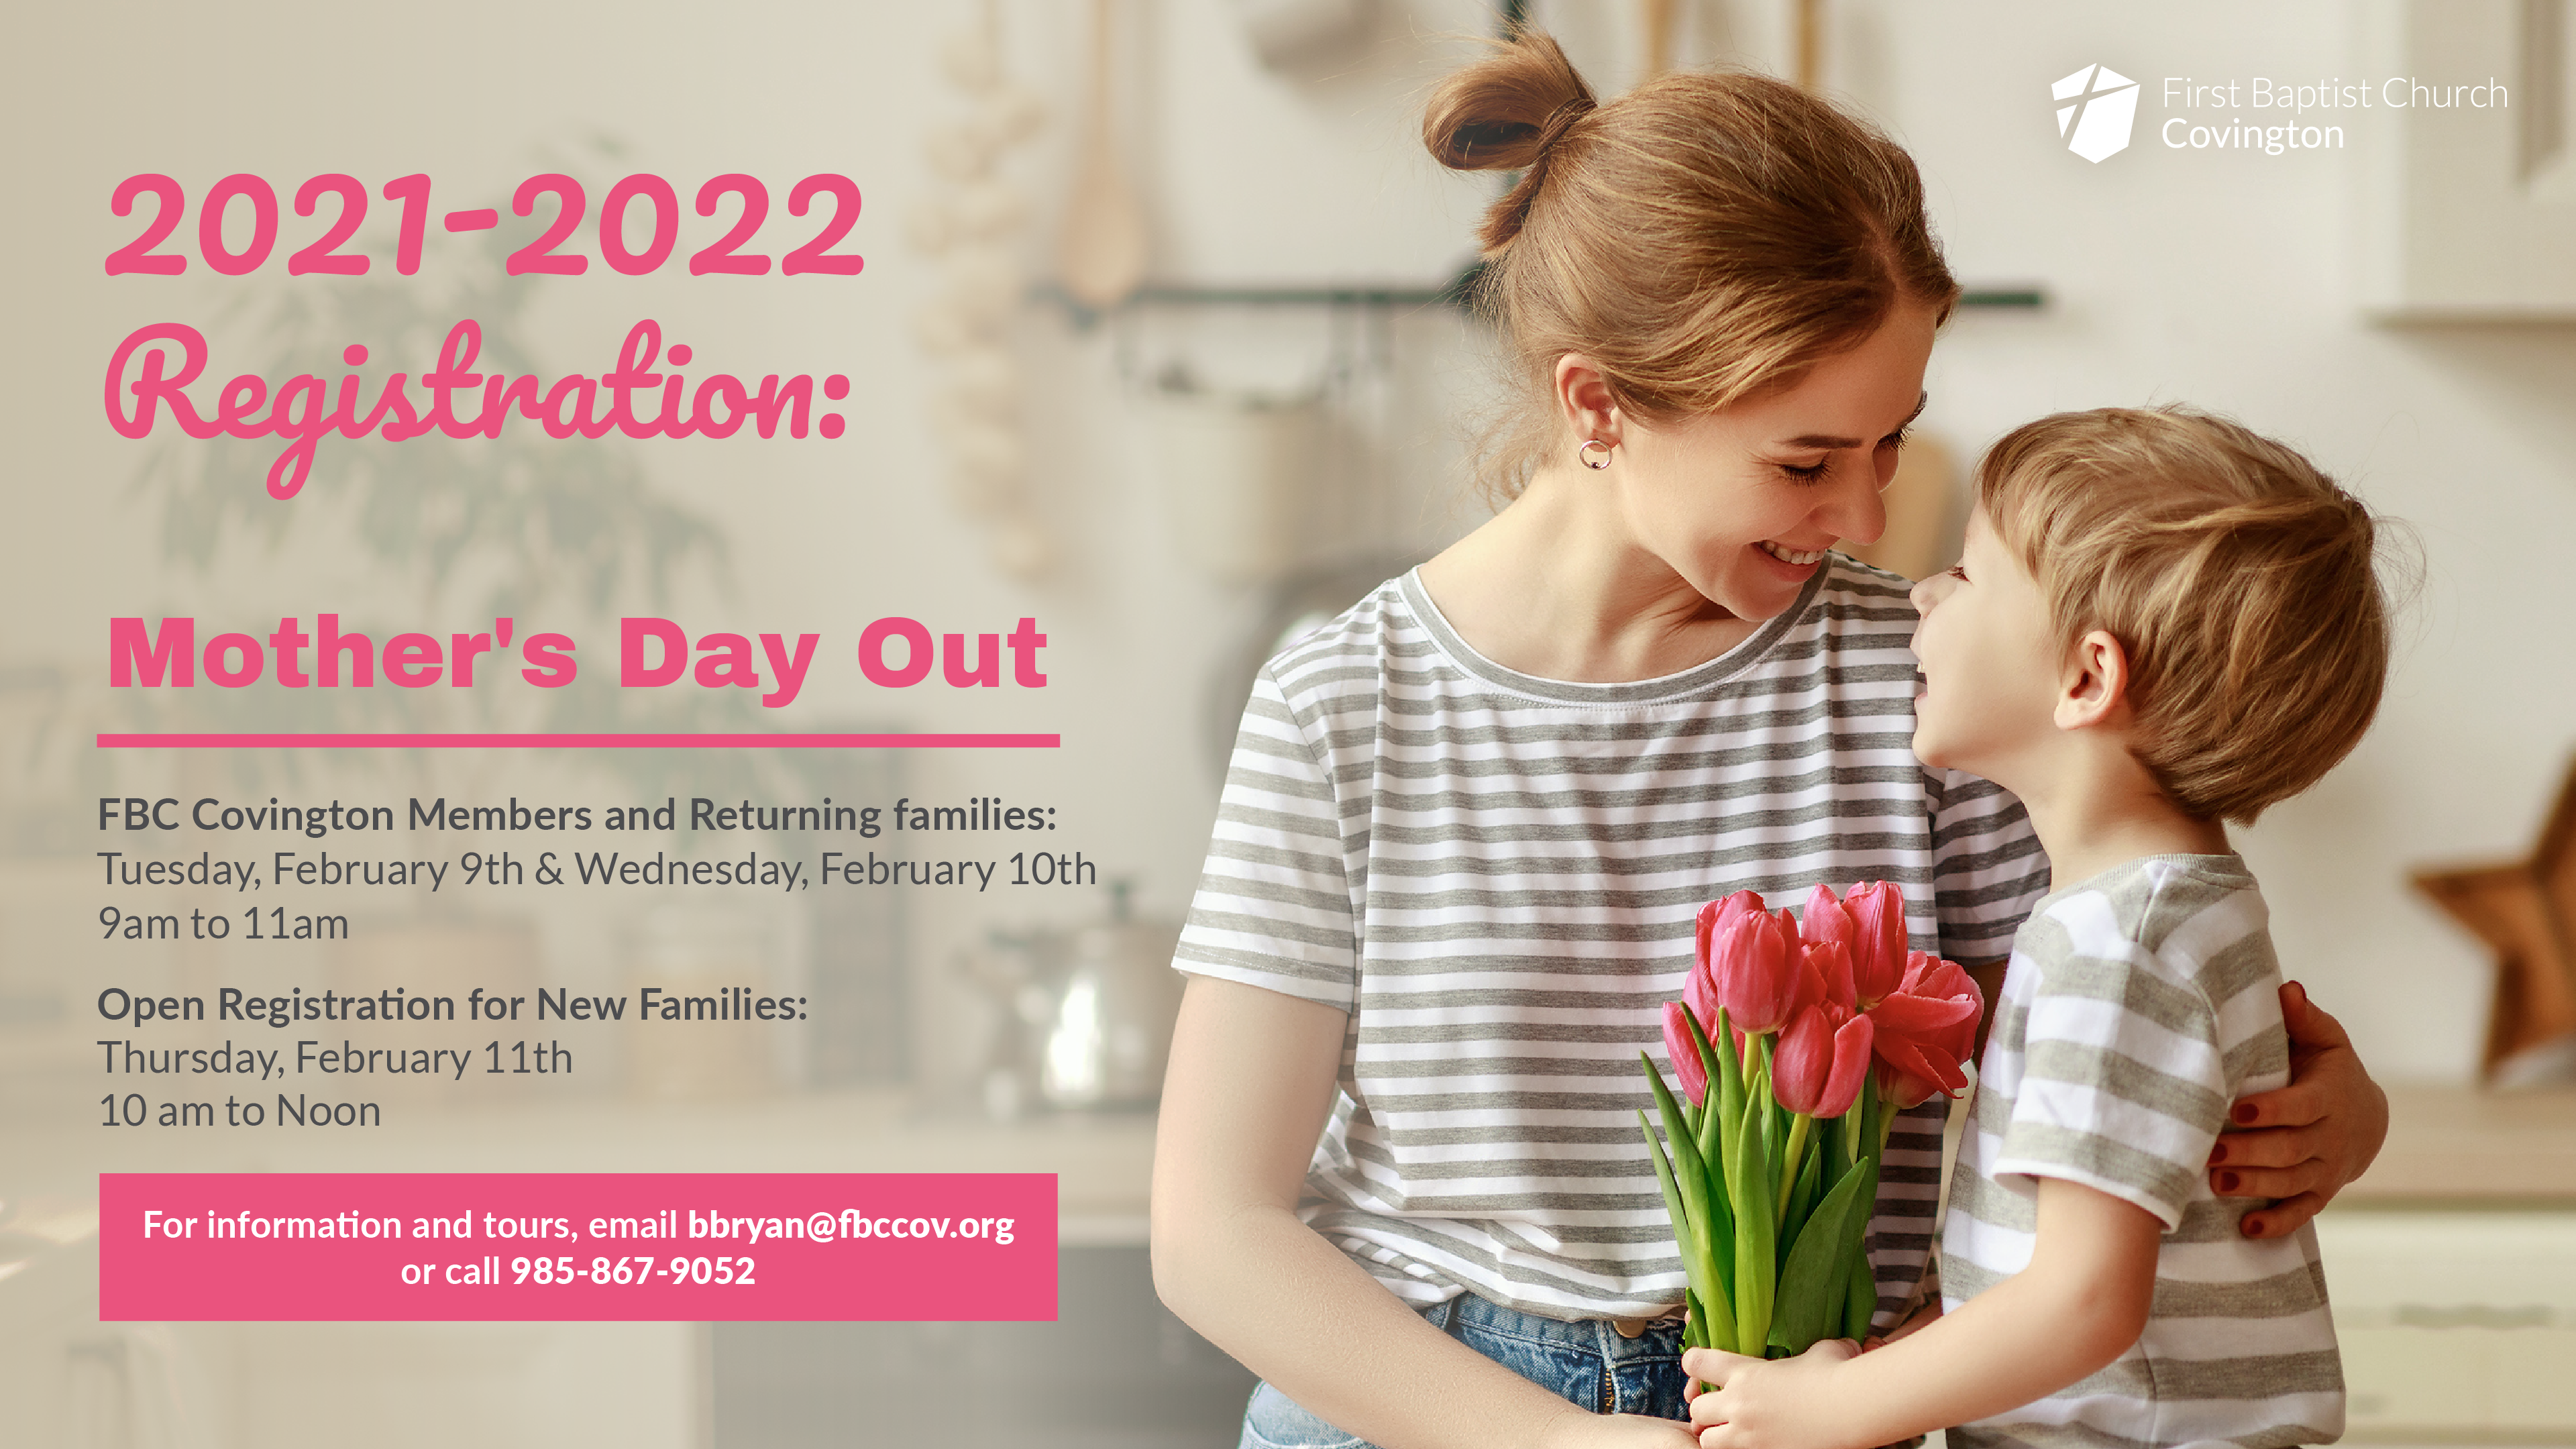 Mother's Day Out 2021-2022